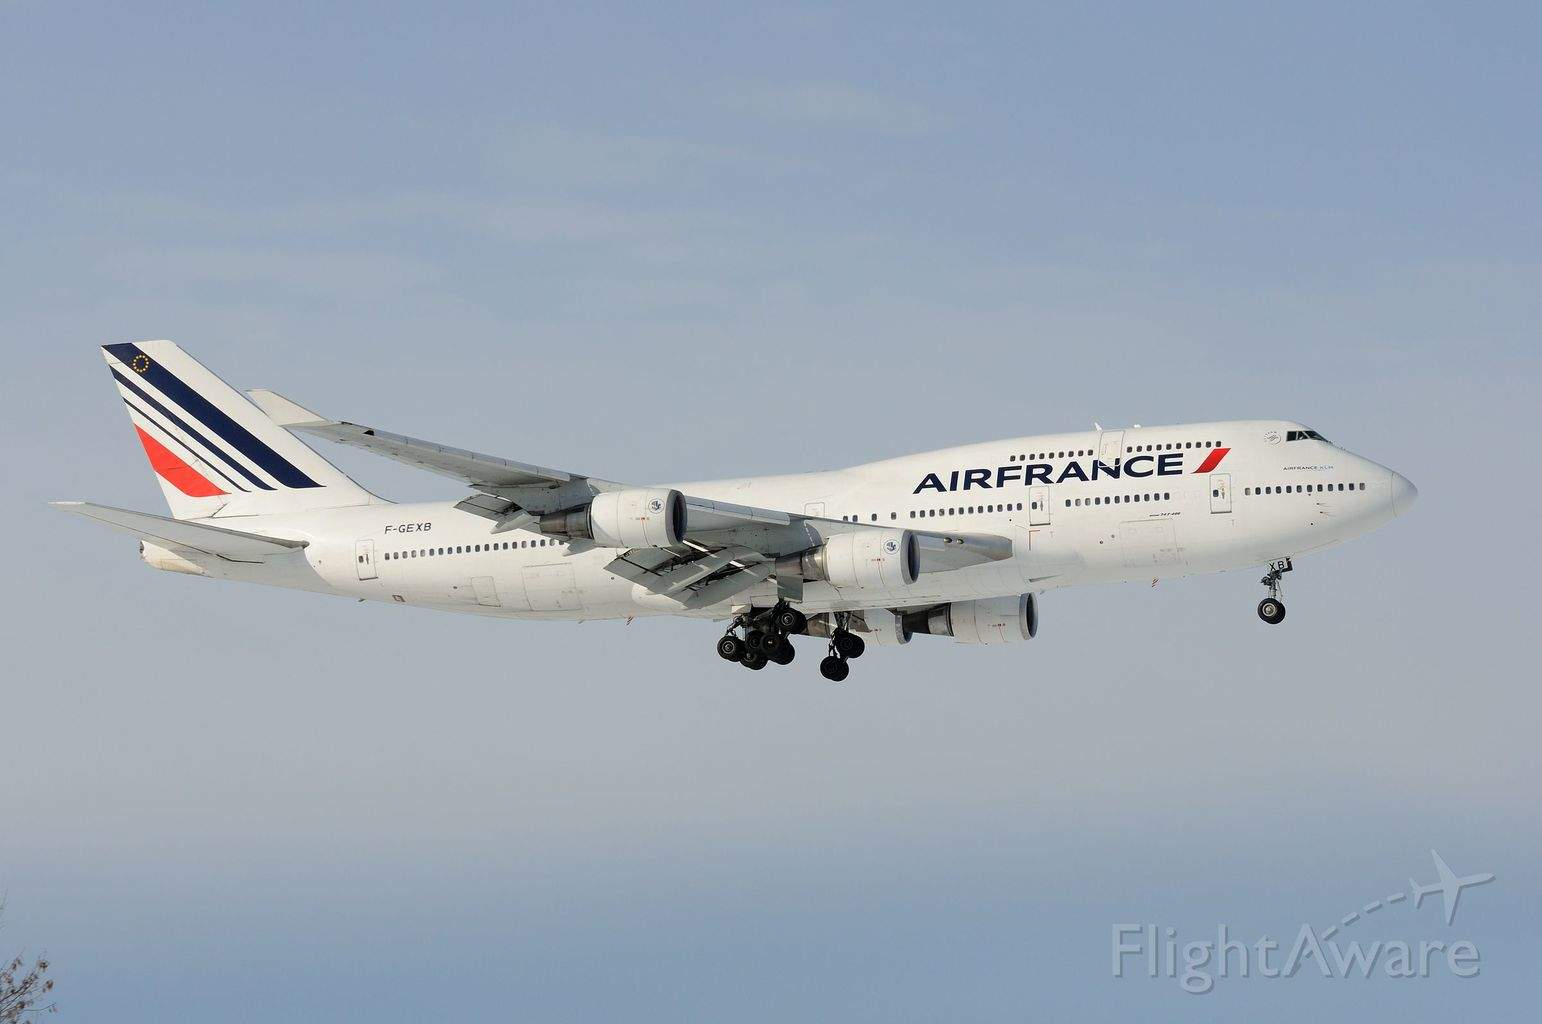 Flight Attendants at Air France to go on strike